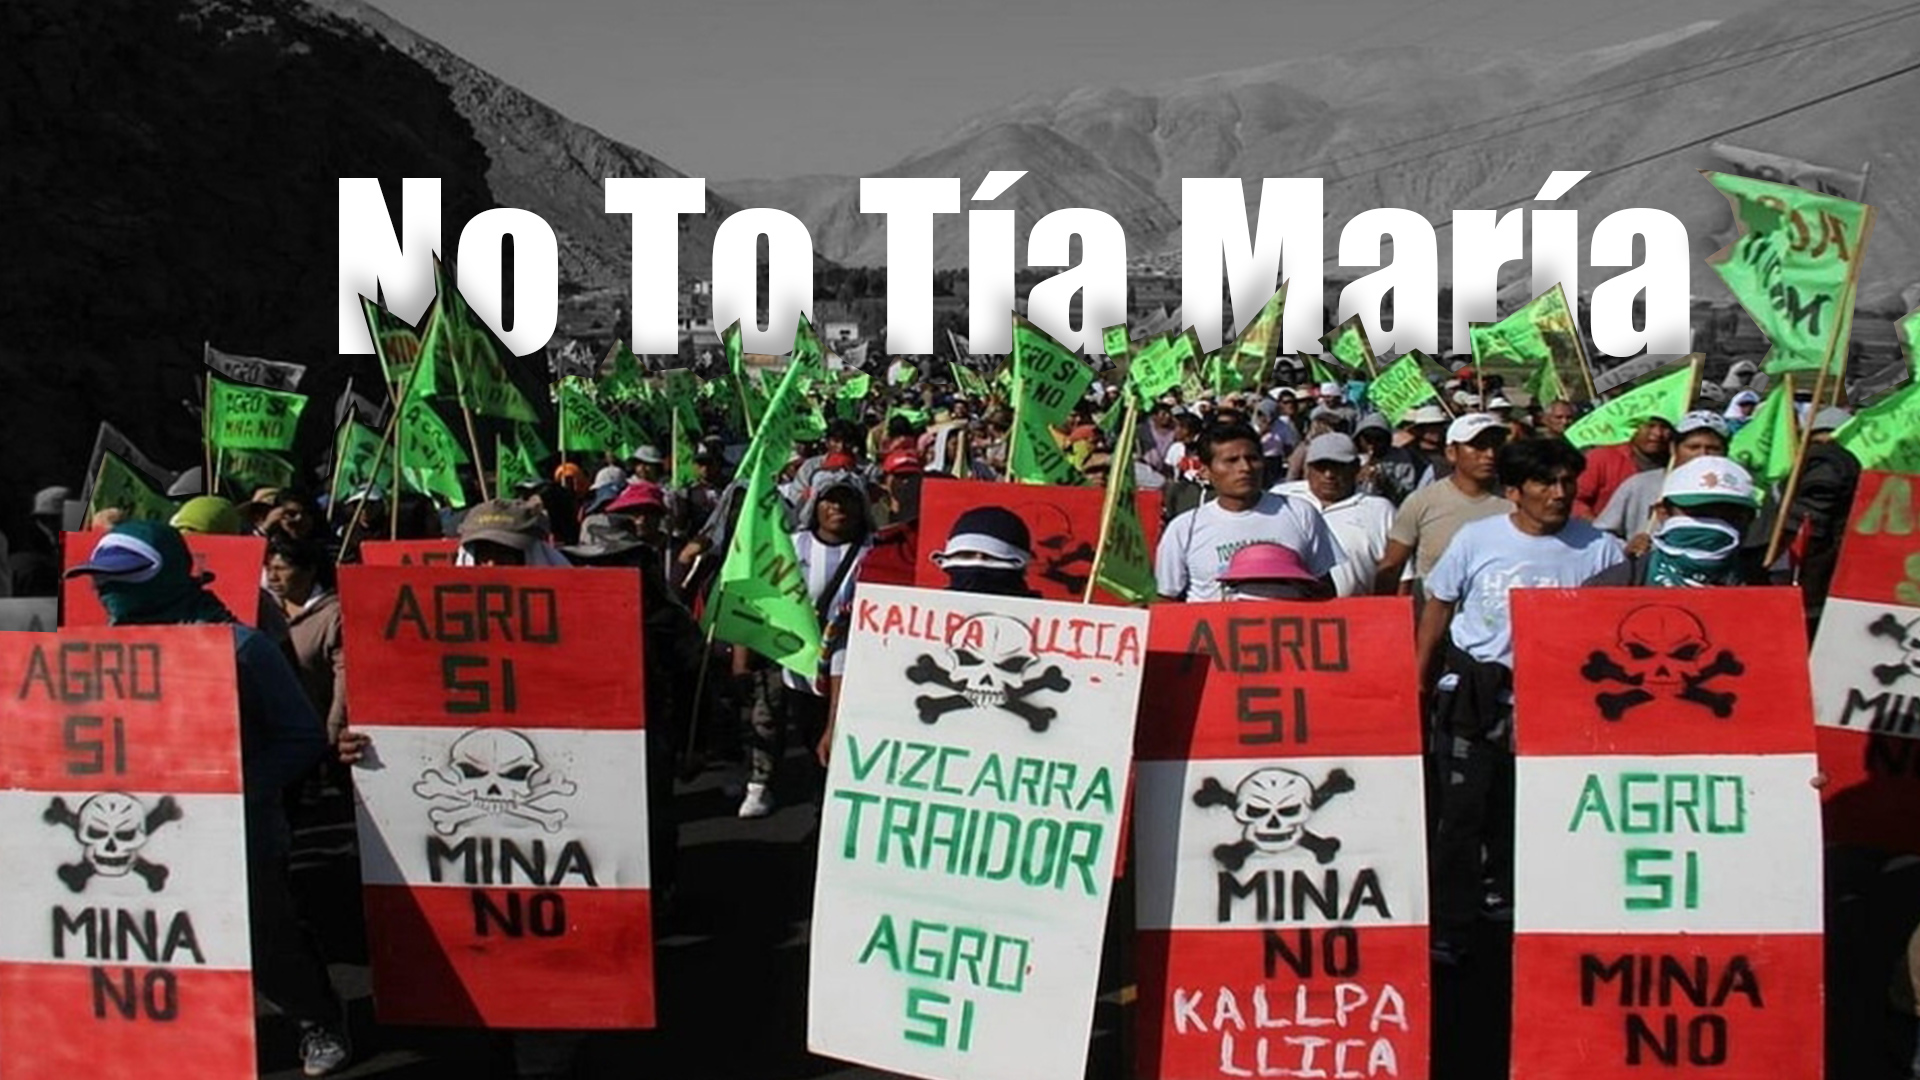 No to Tia Matia Peru Mine